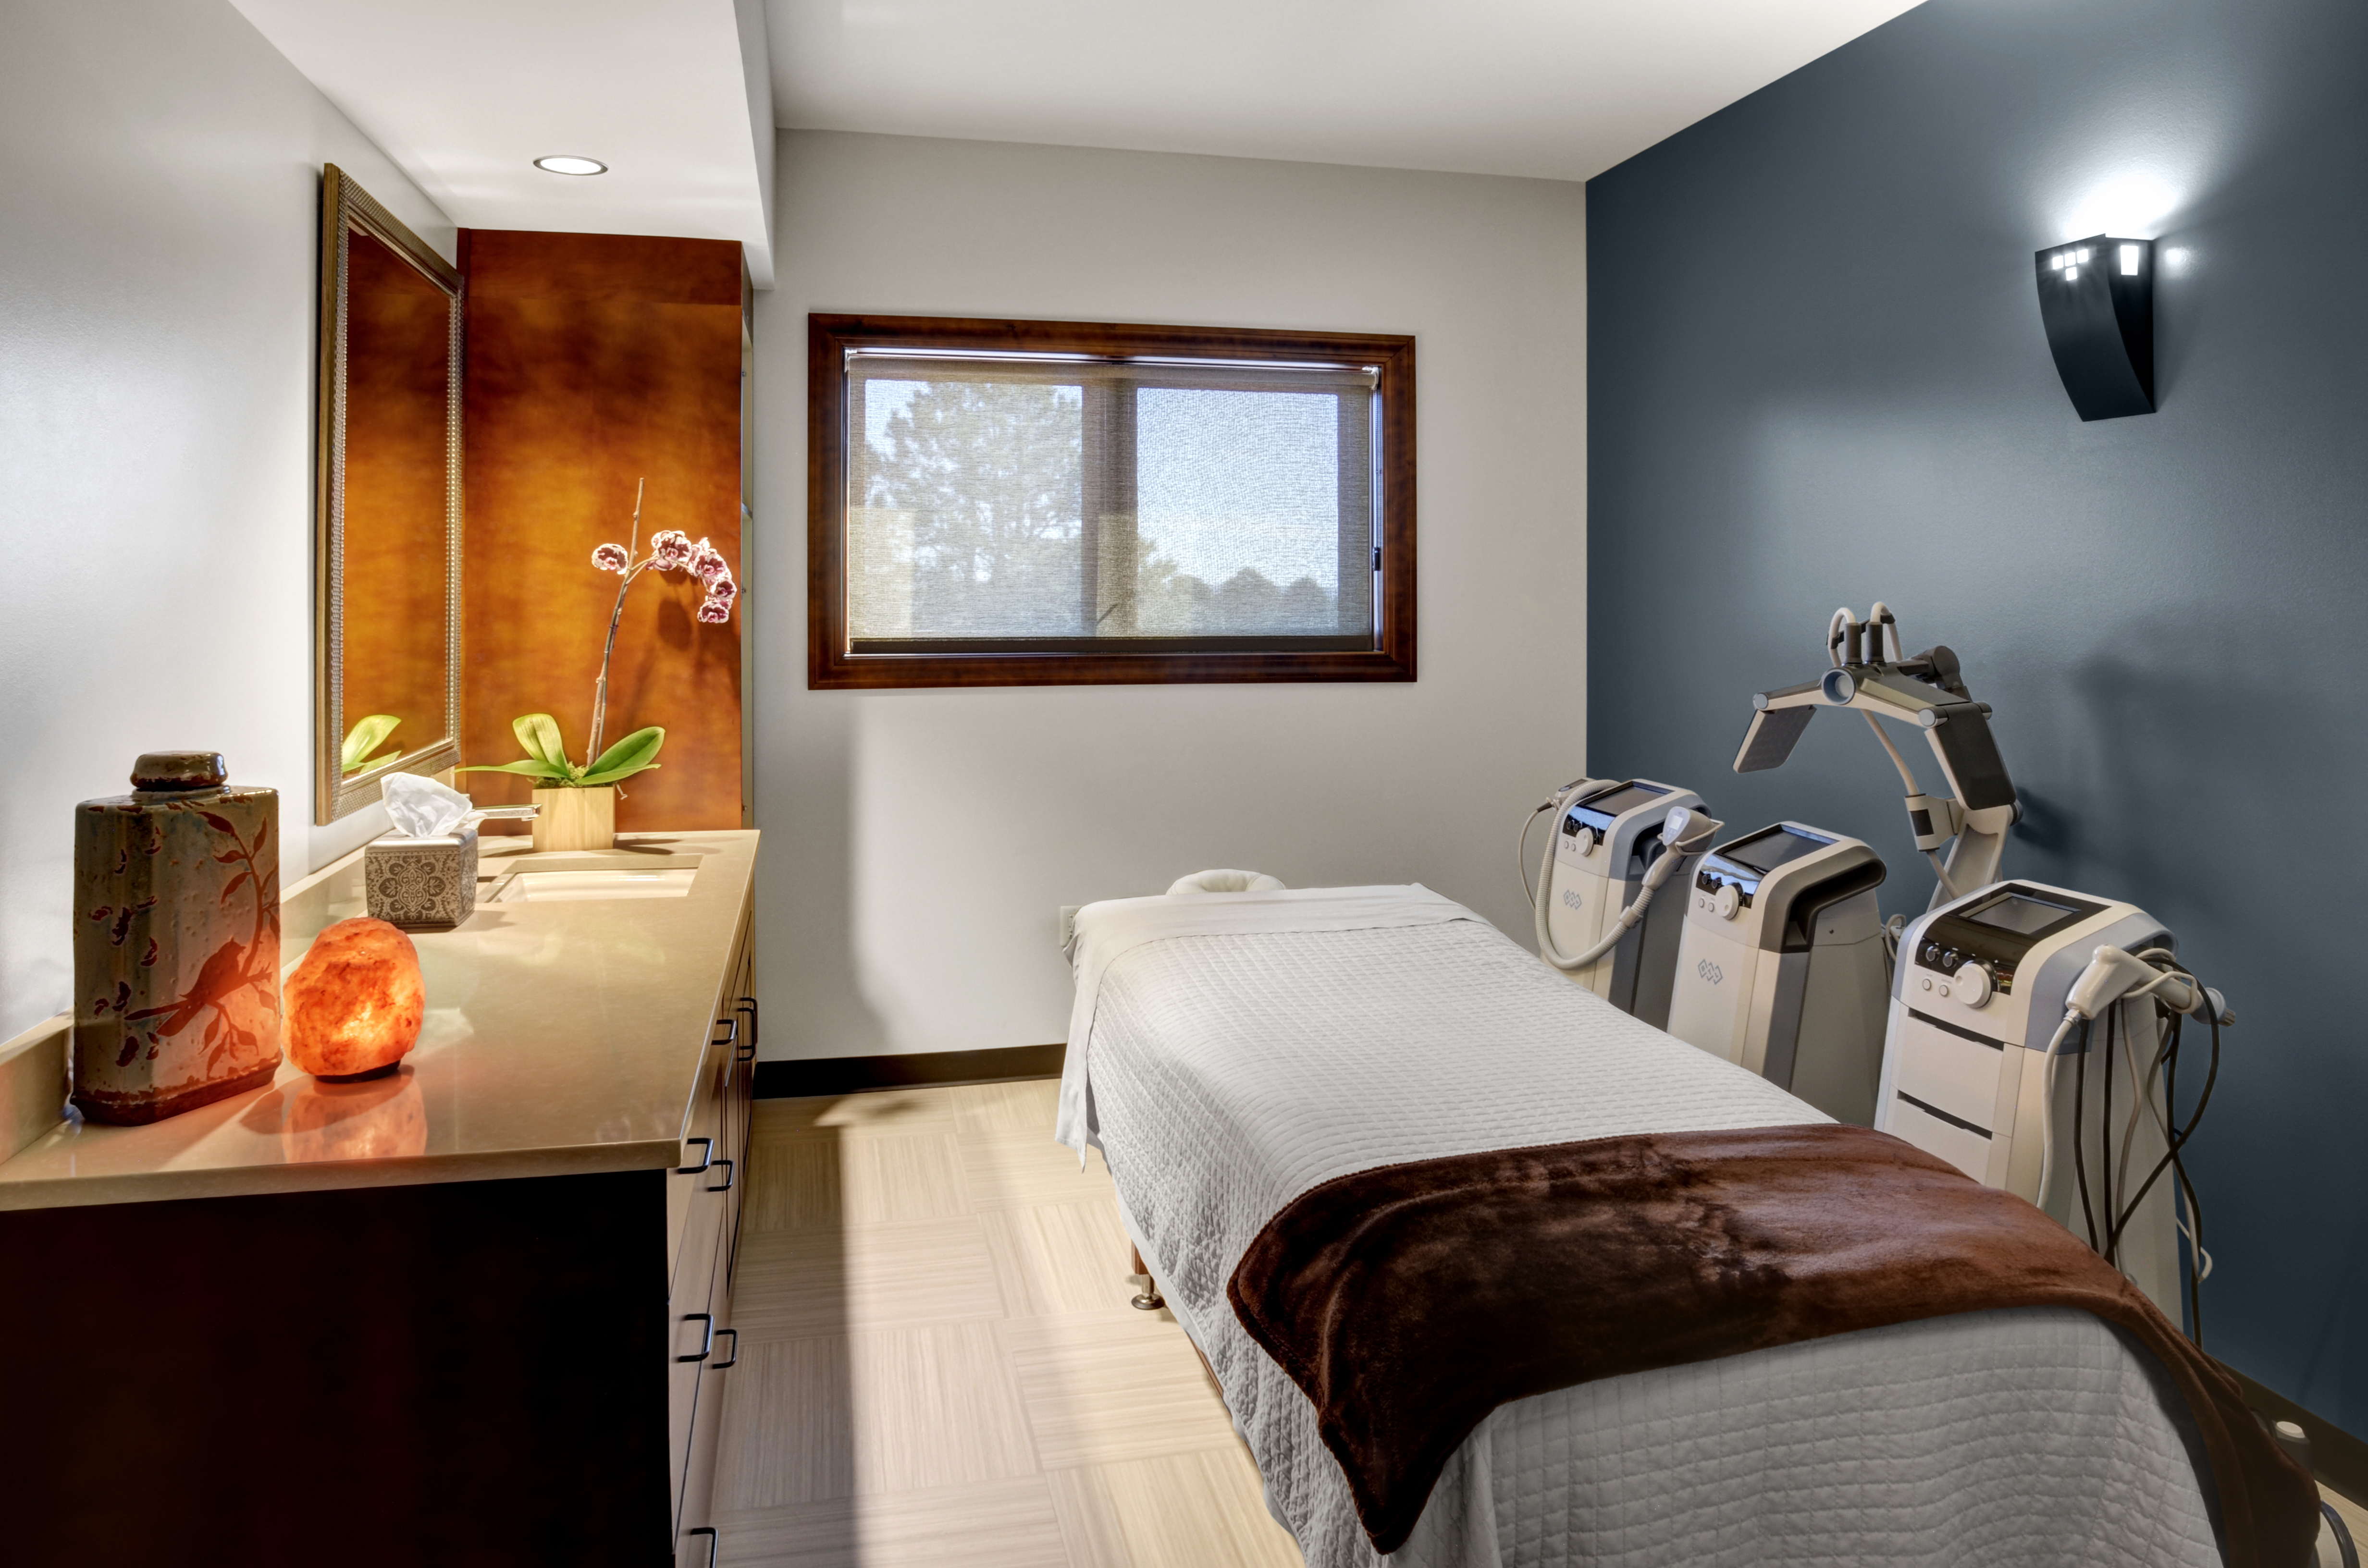 wellness room with a spa bed and machines on the side